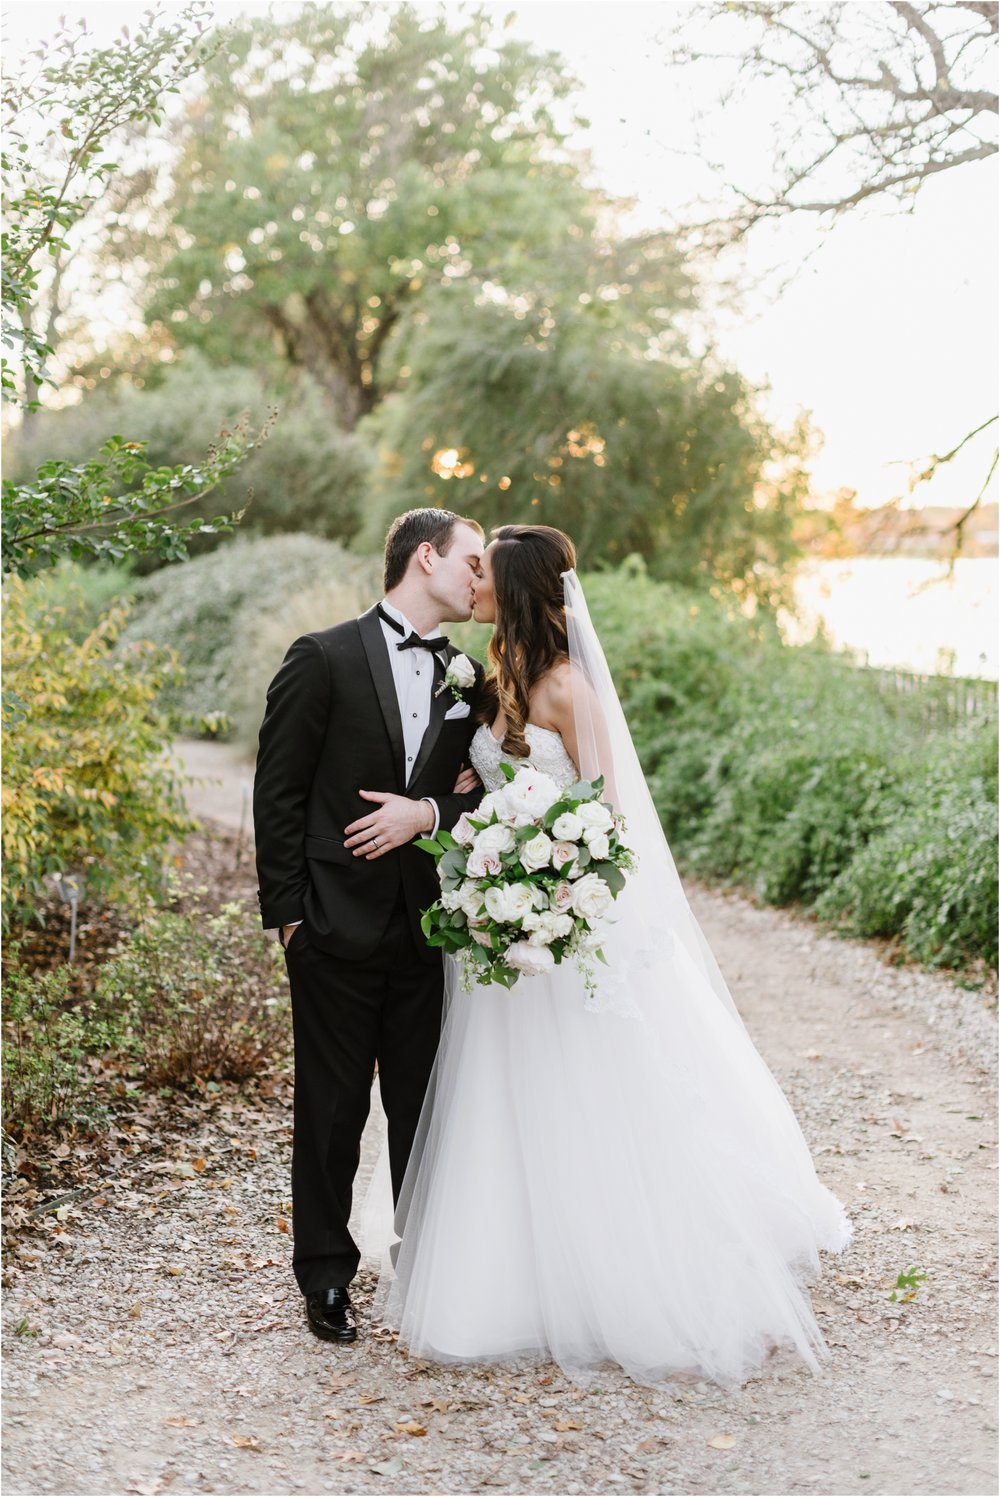 dallasweddingphotographer_texasweddingphotographer_texasweddingphotographers_dallasweddingphotographer_mattandjulieweddings_0772.jpg